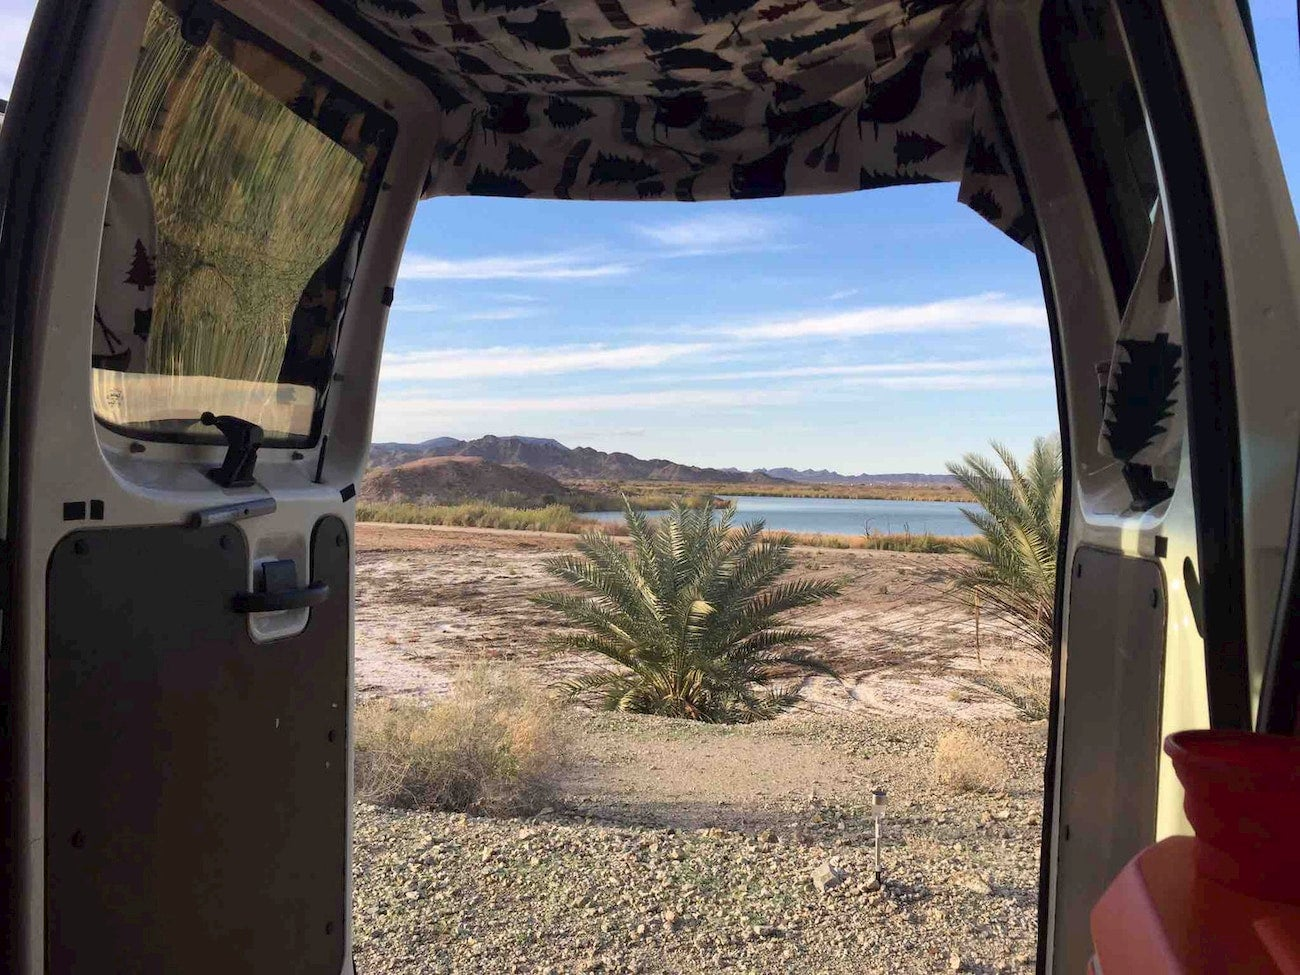 View through camper of tropical plants, desert, and lake.